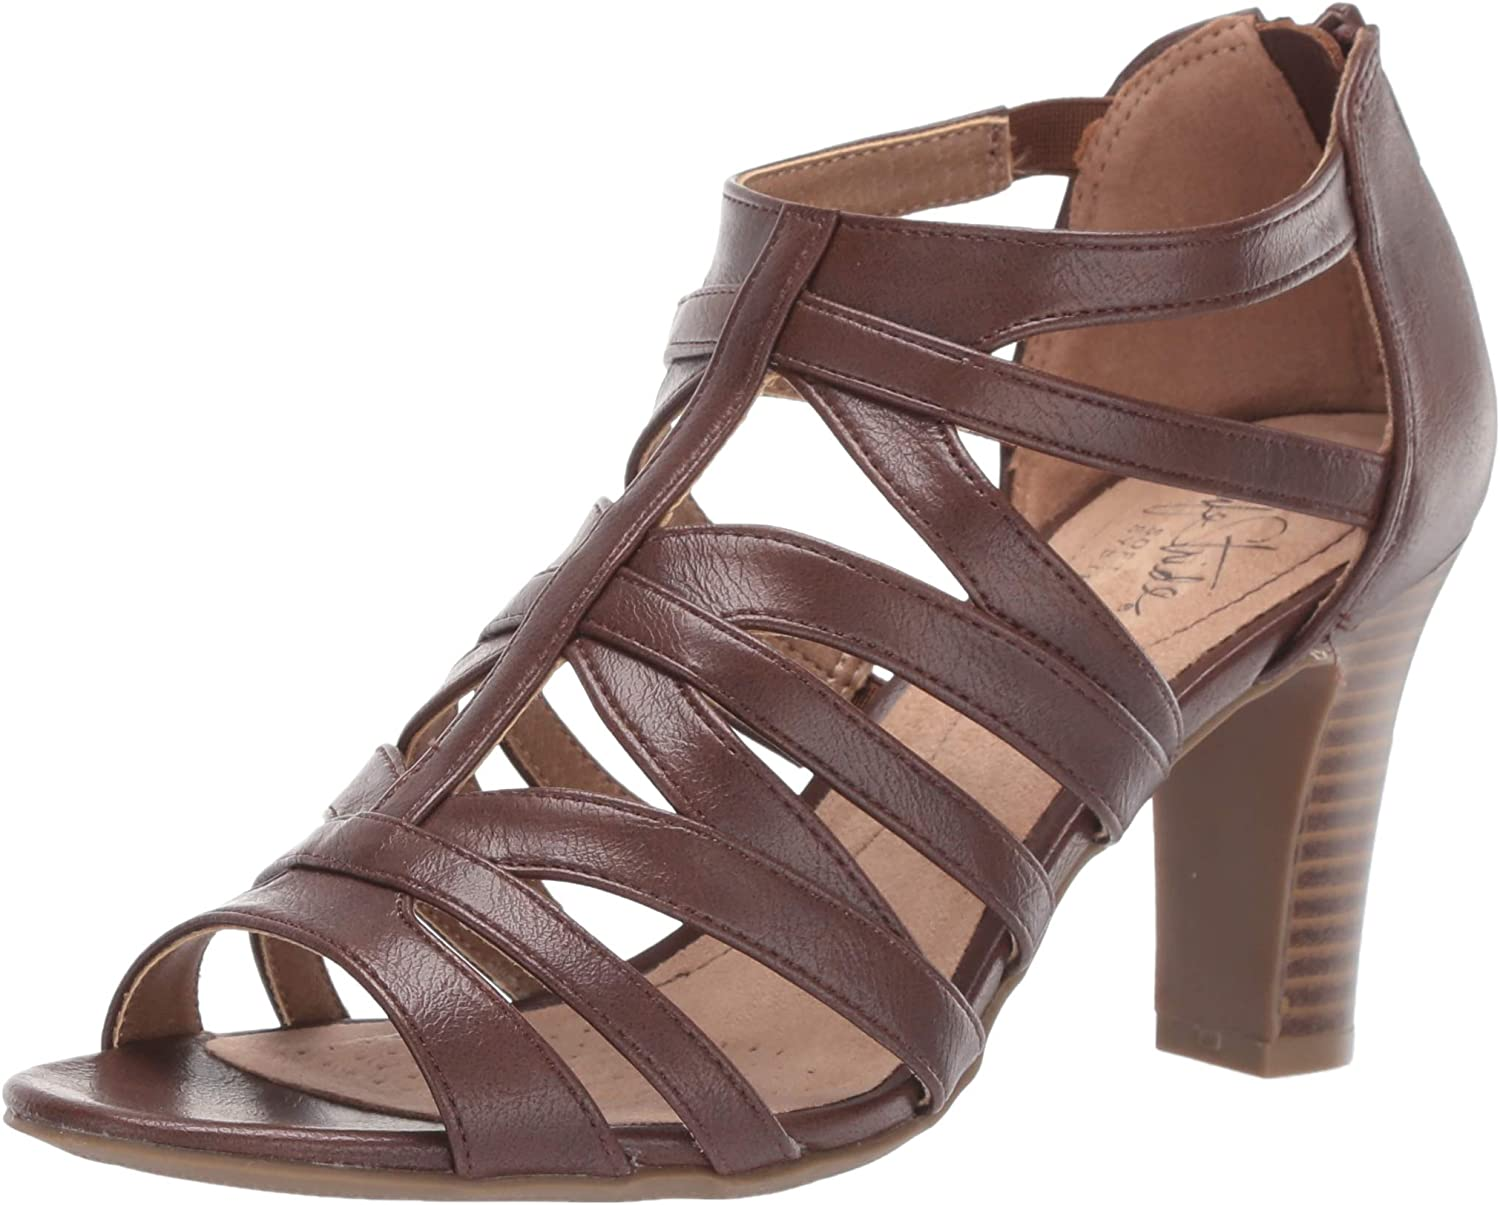 LifeStride Women's Carter Heeled Sandal